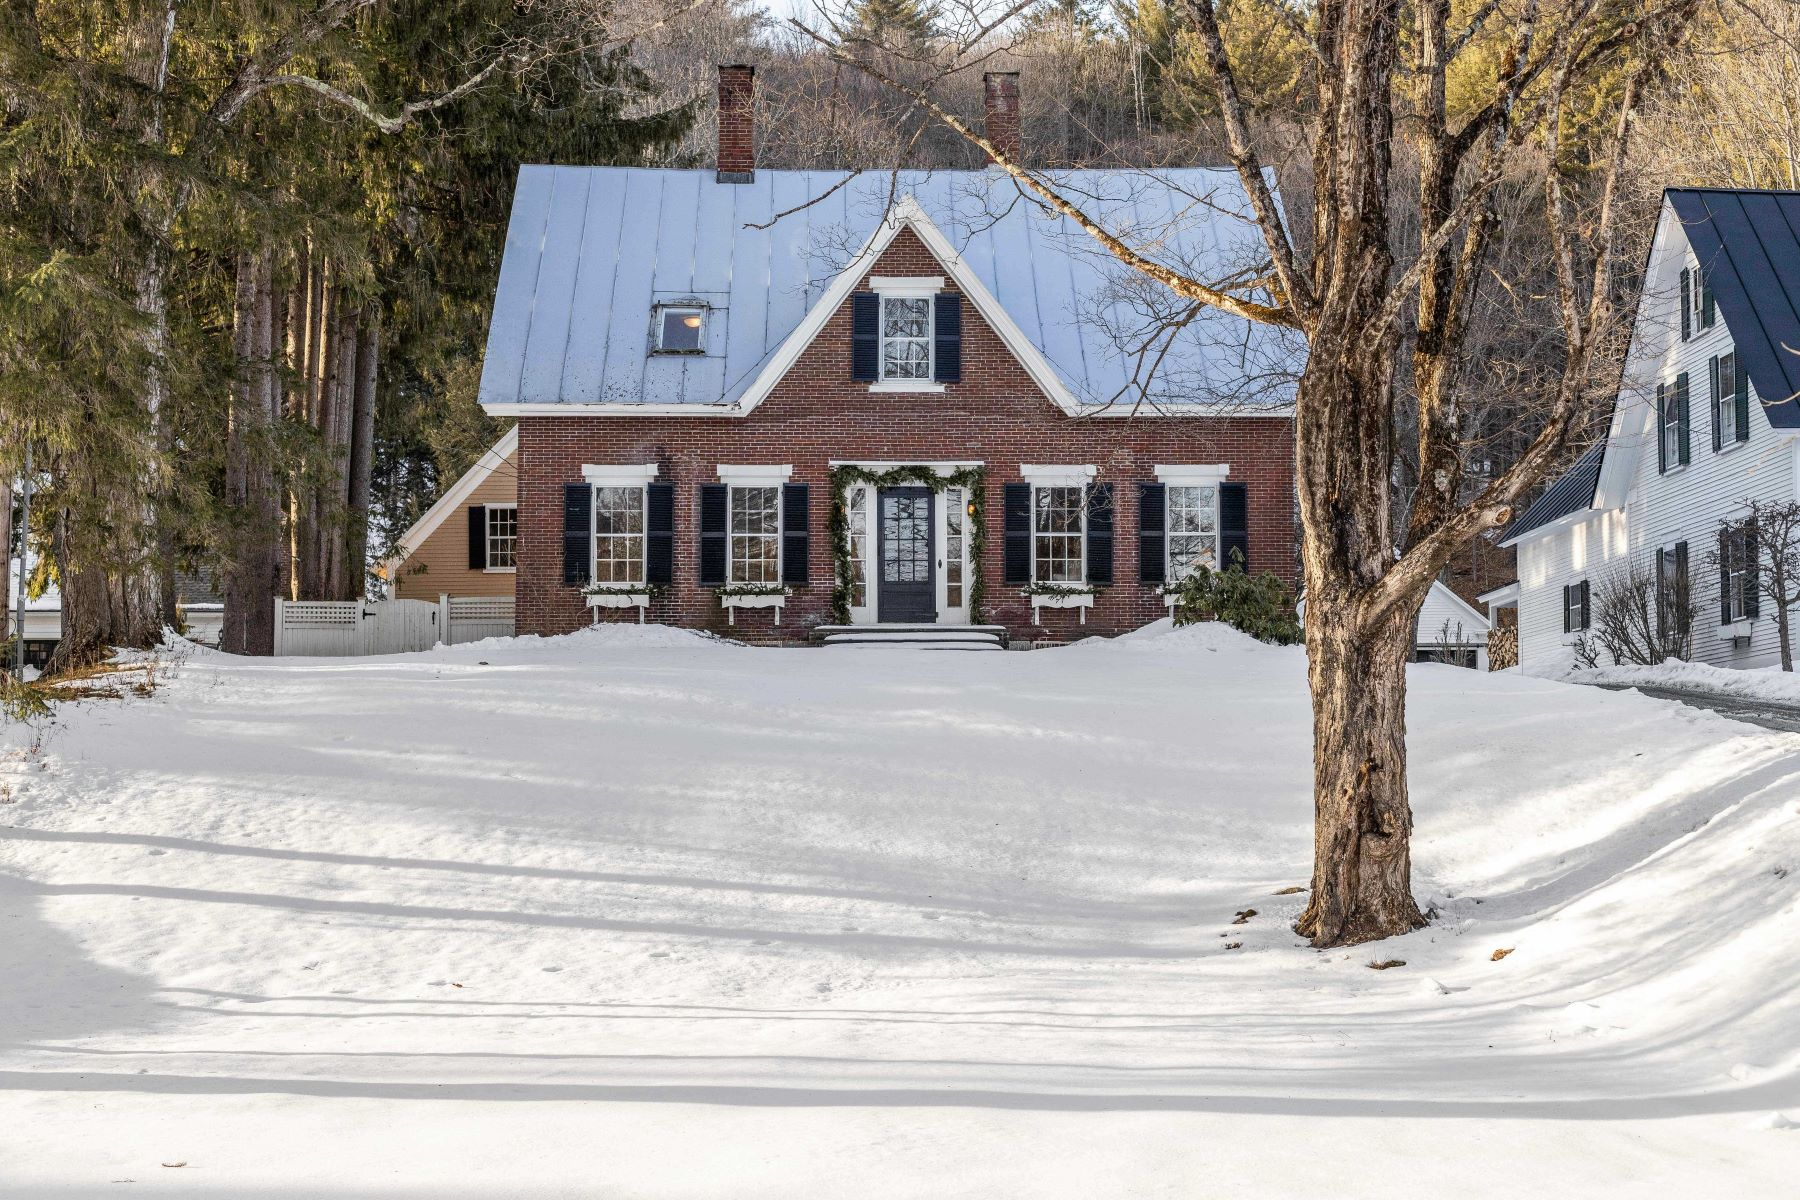 Single Family Homes for Sale at Historic Woodstock Village 21 Mountain Avenue Woodstock, Vermont 05091 United States